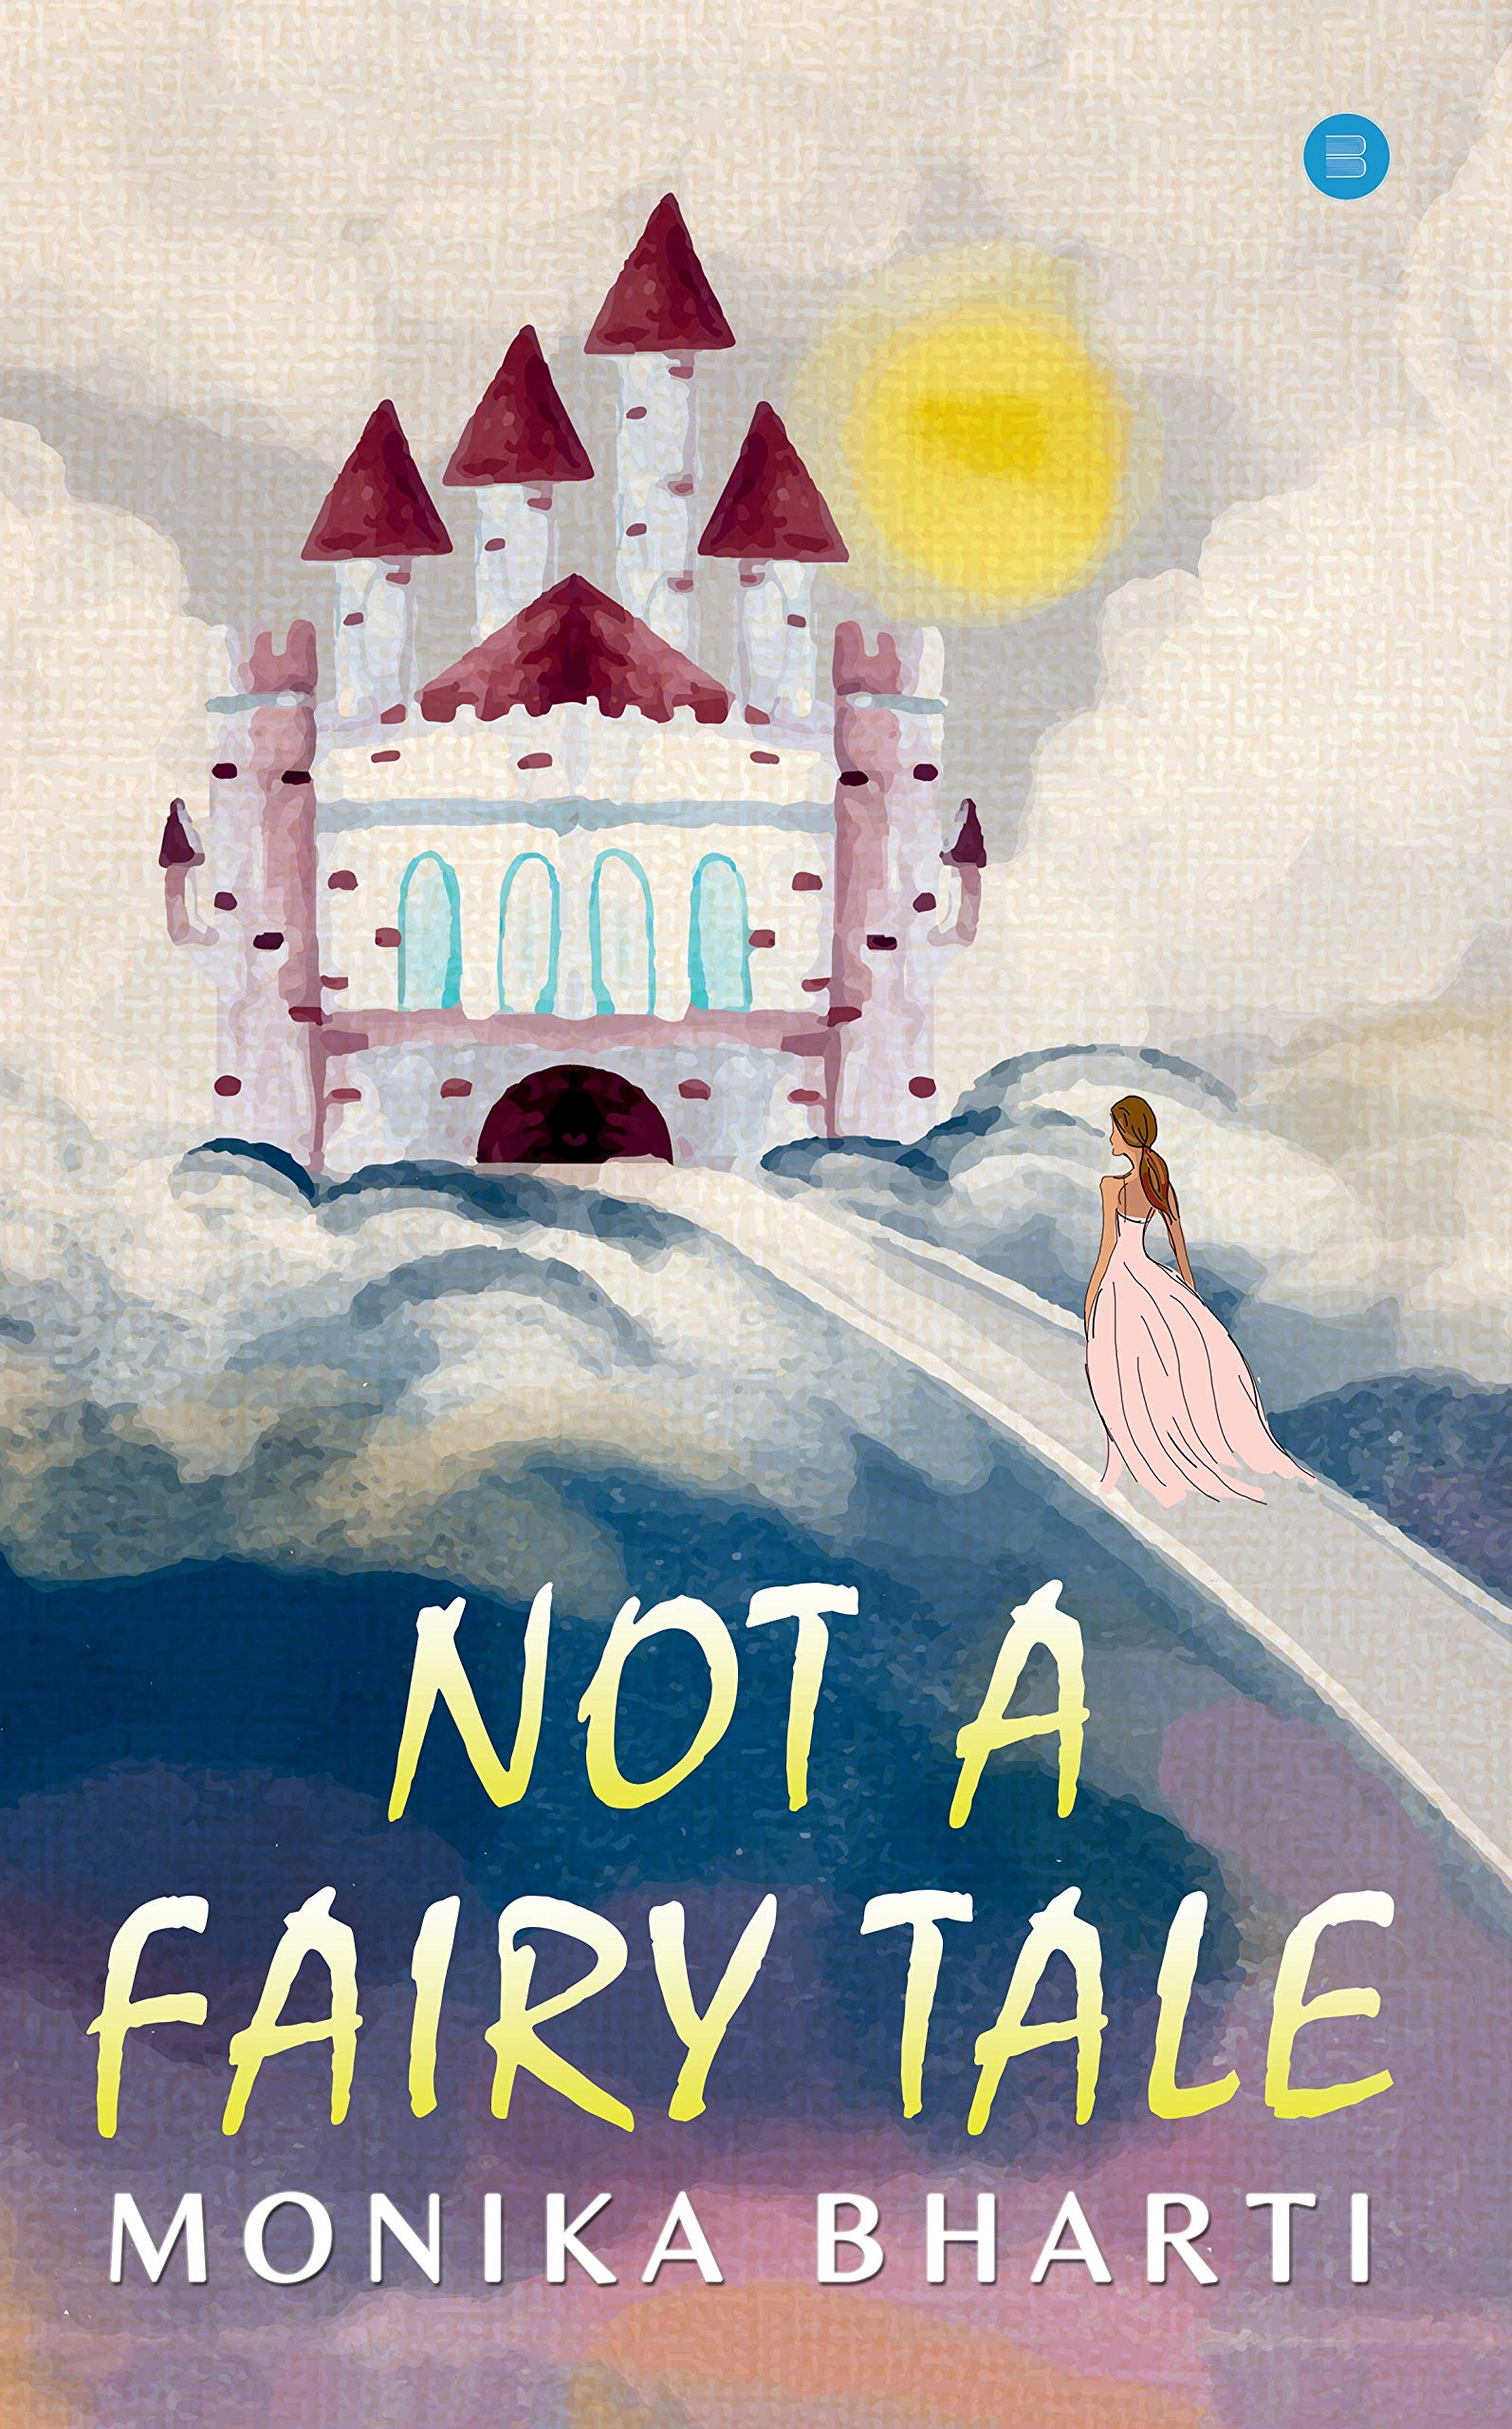 Book Review - Not A Fairytale by Monika Bharti